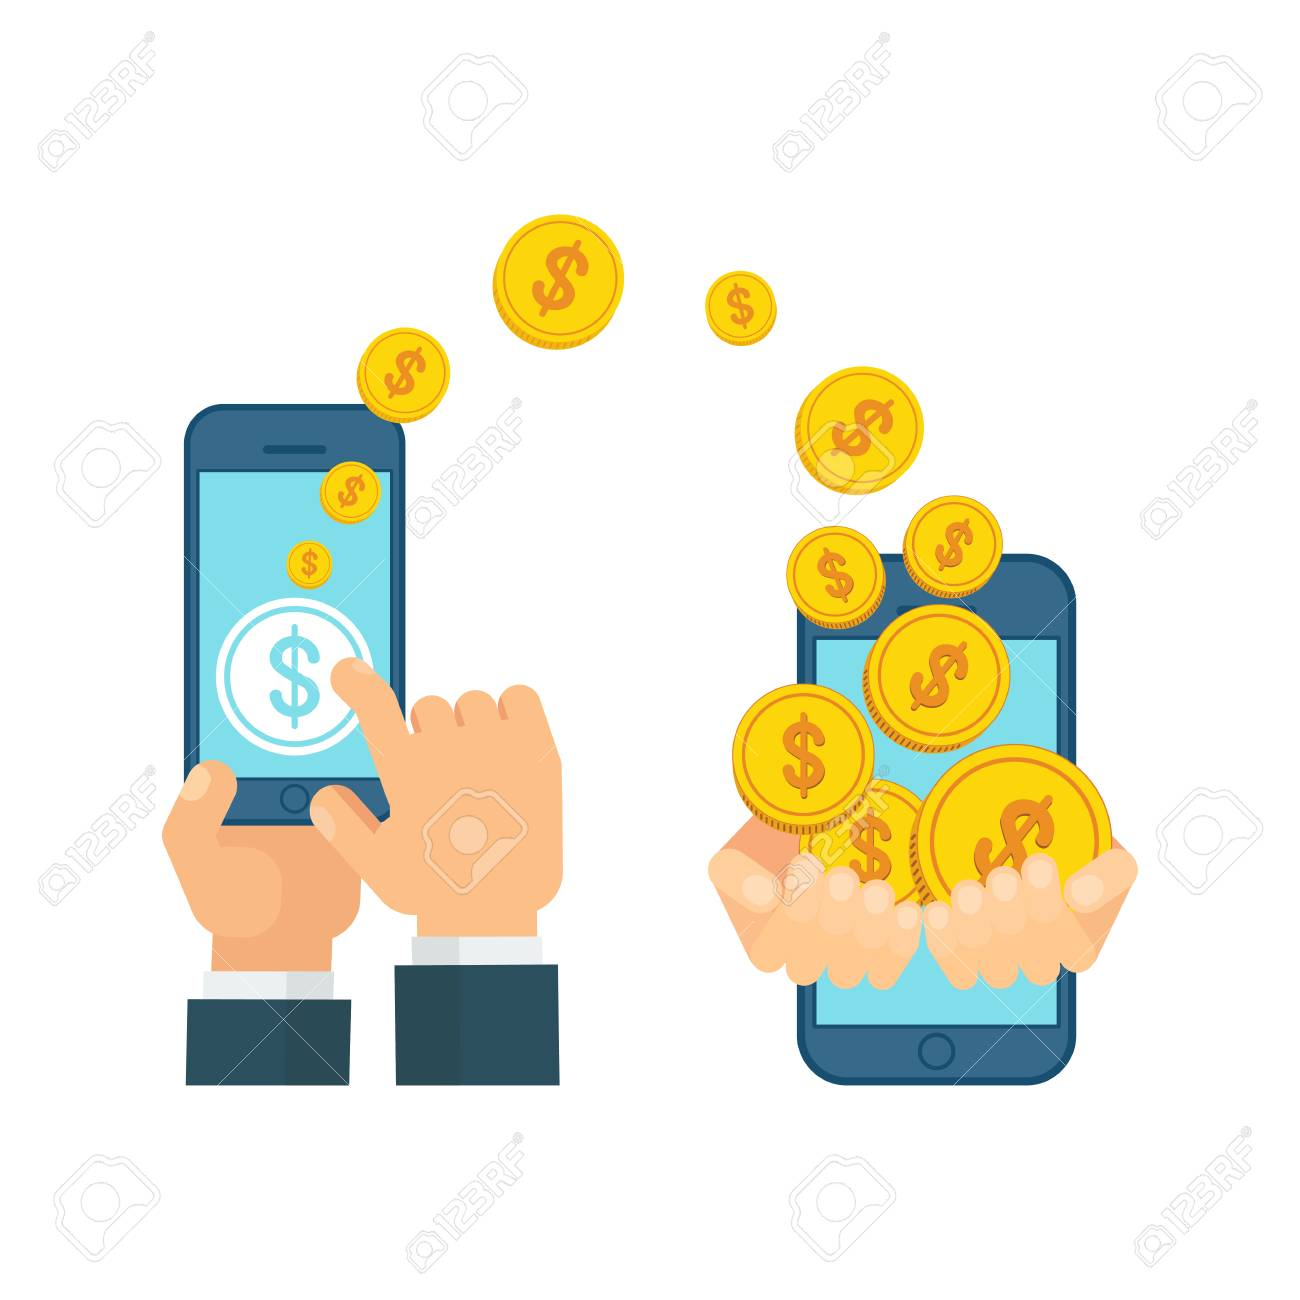 money transfer using mobile device smart phone with banking rh 123rf com Boardmaker Send Do Not Send